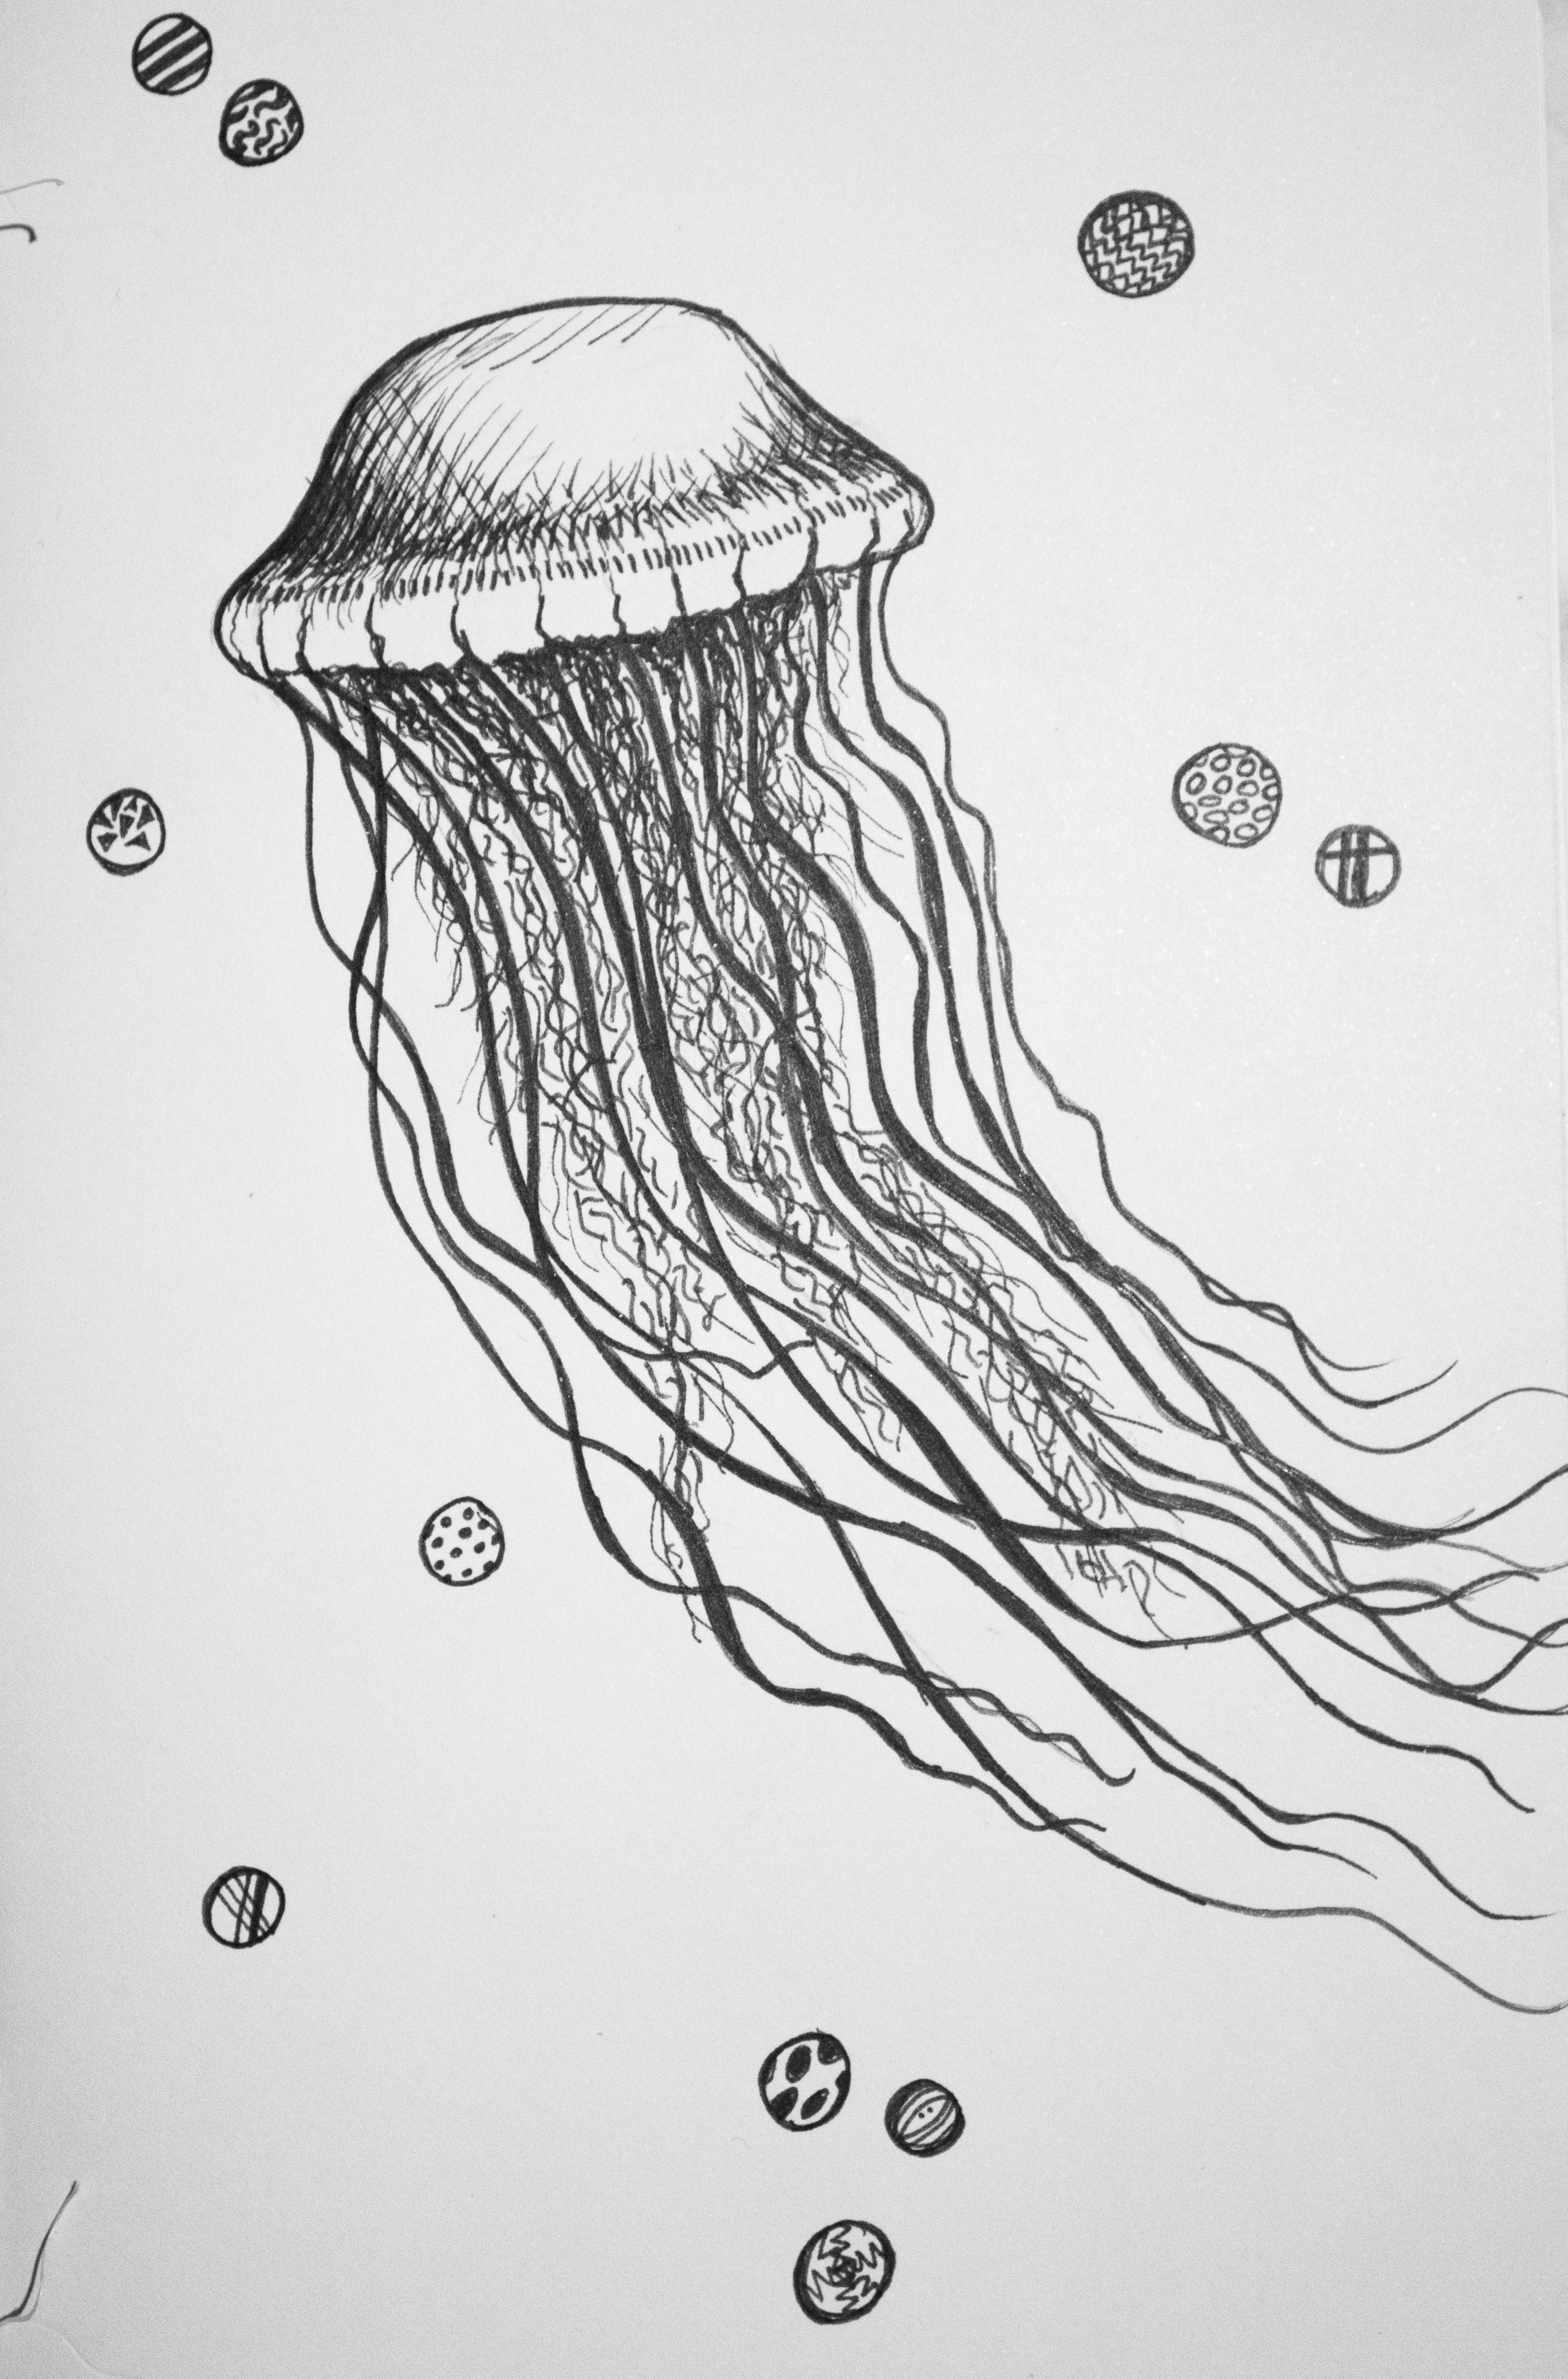 Jellyfish, scad style